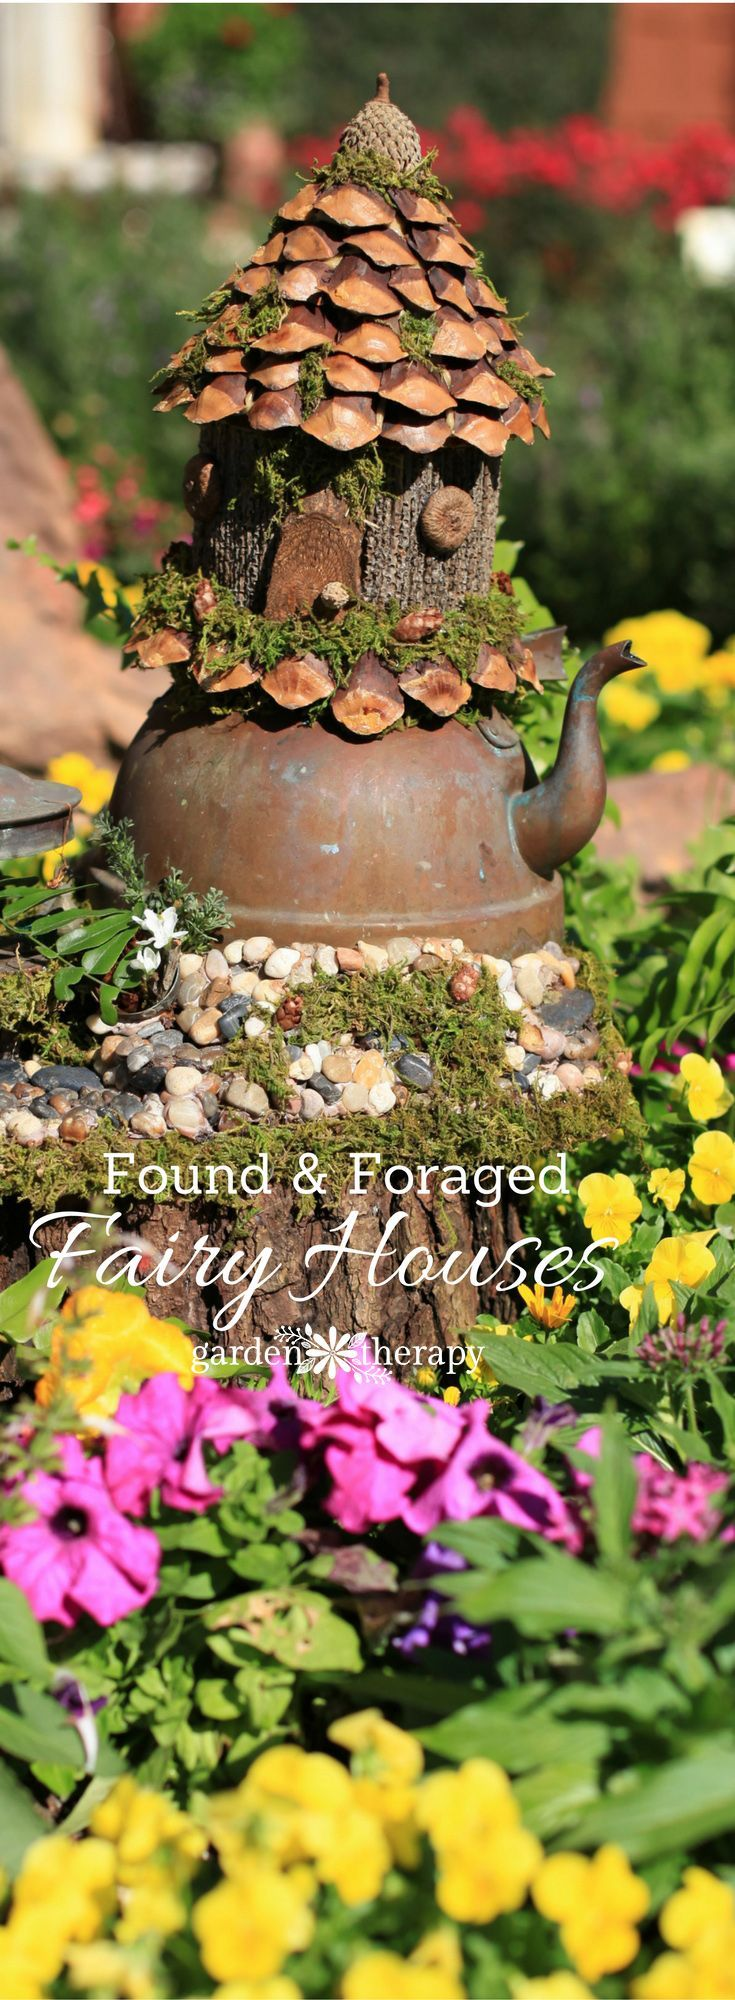 Found materials like mushrooms, pine cones, and branches make little foraged fai...